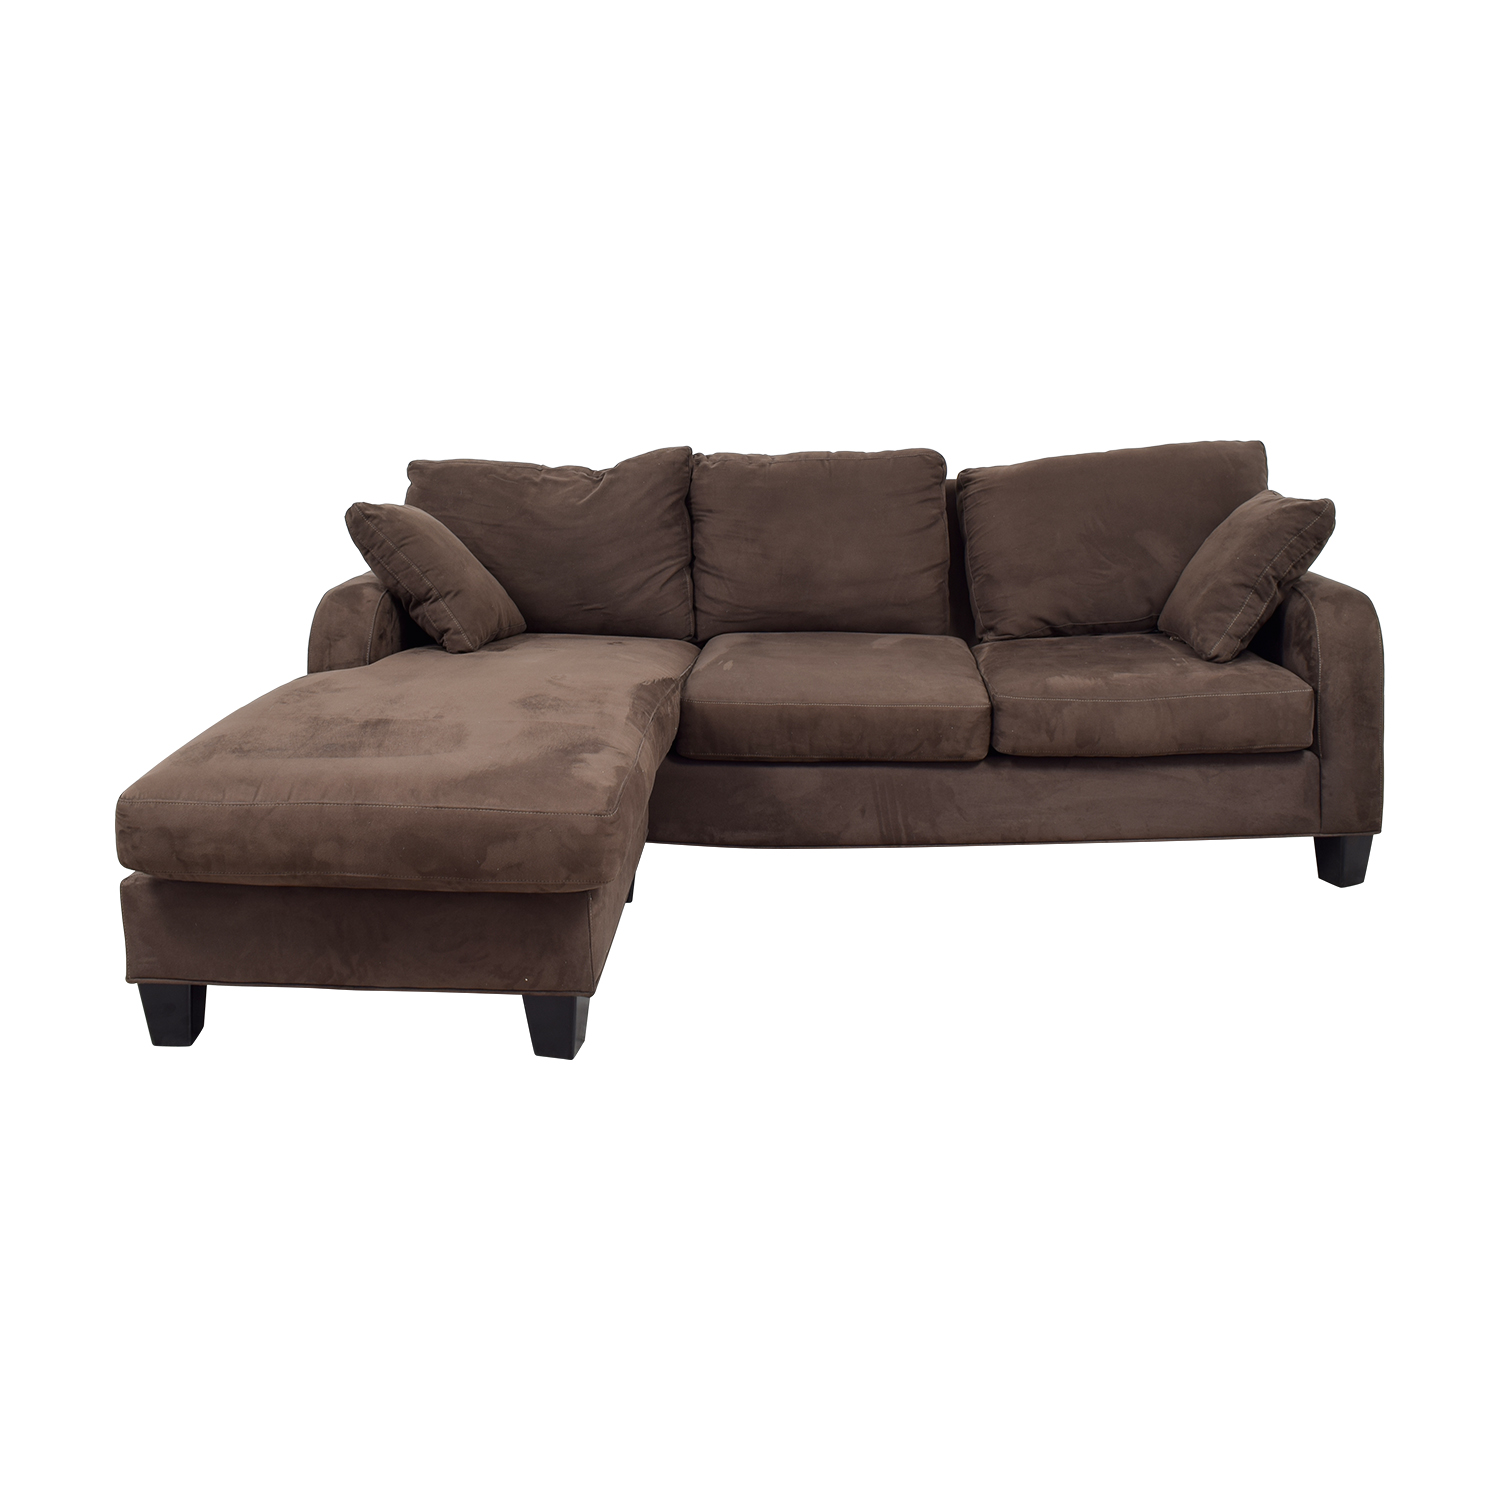 Cindy Crawford Brown Chaise Sectional / Sofas